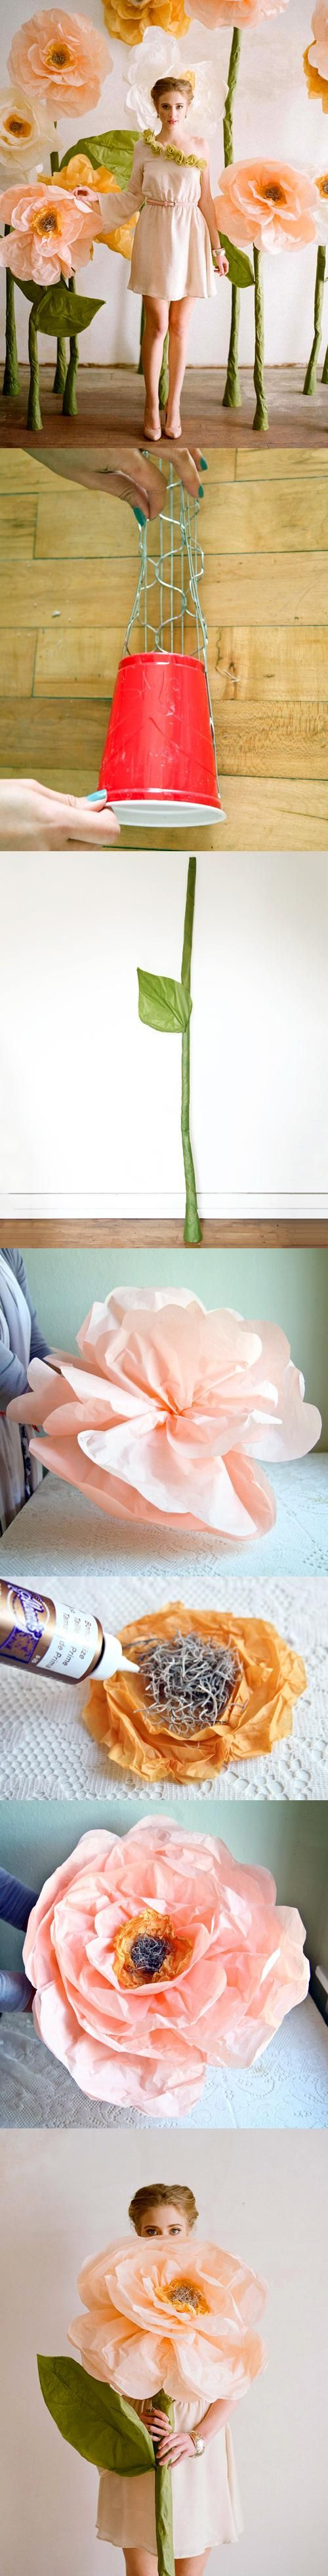 best images about papel on pinterest crafts diy and giant flowers